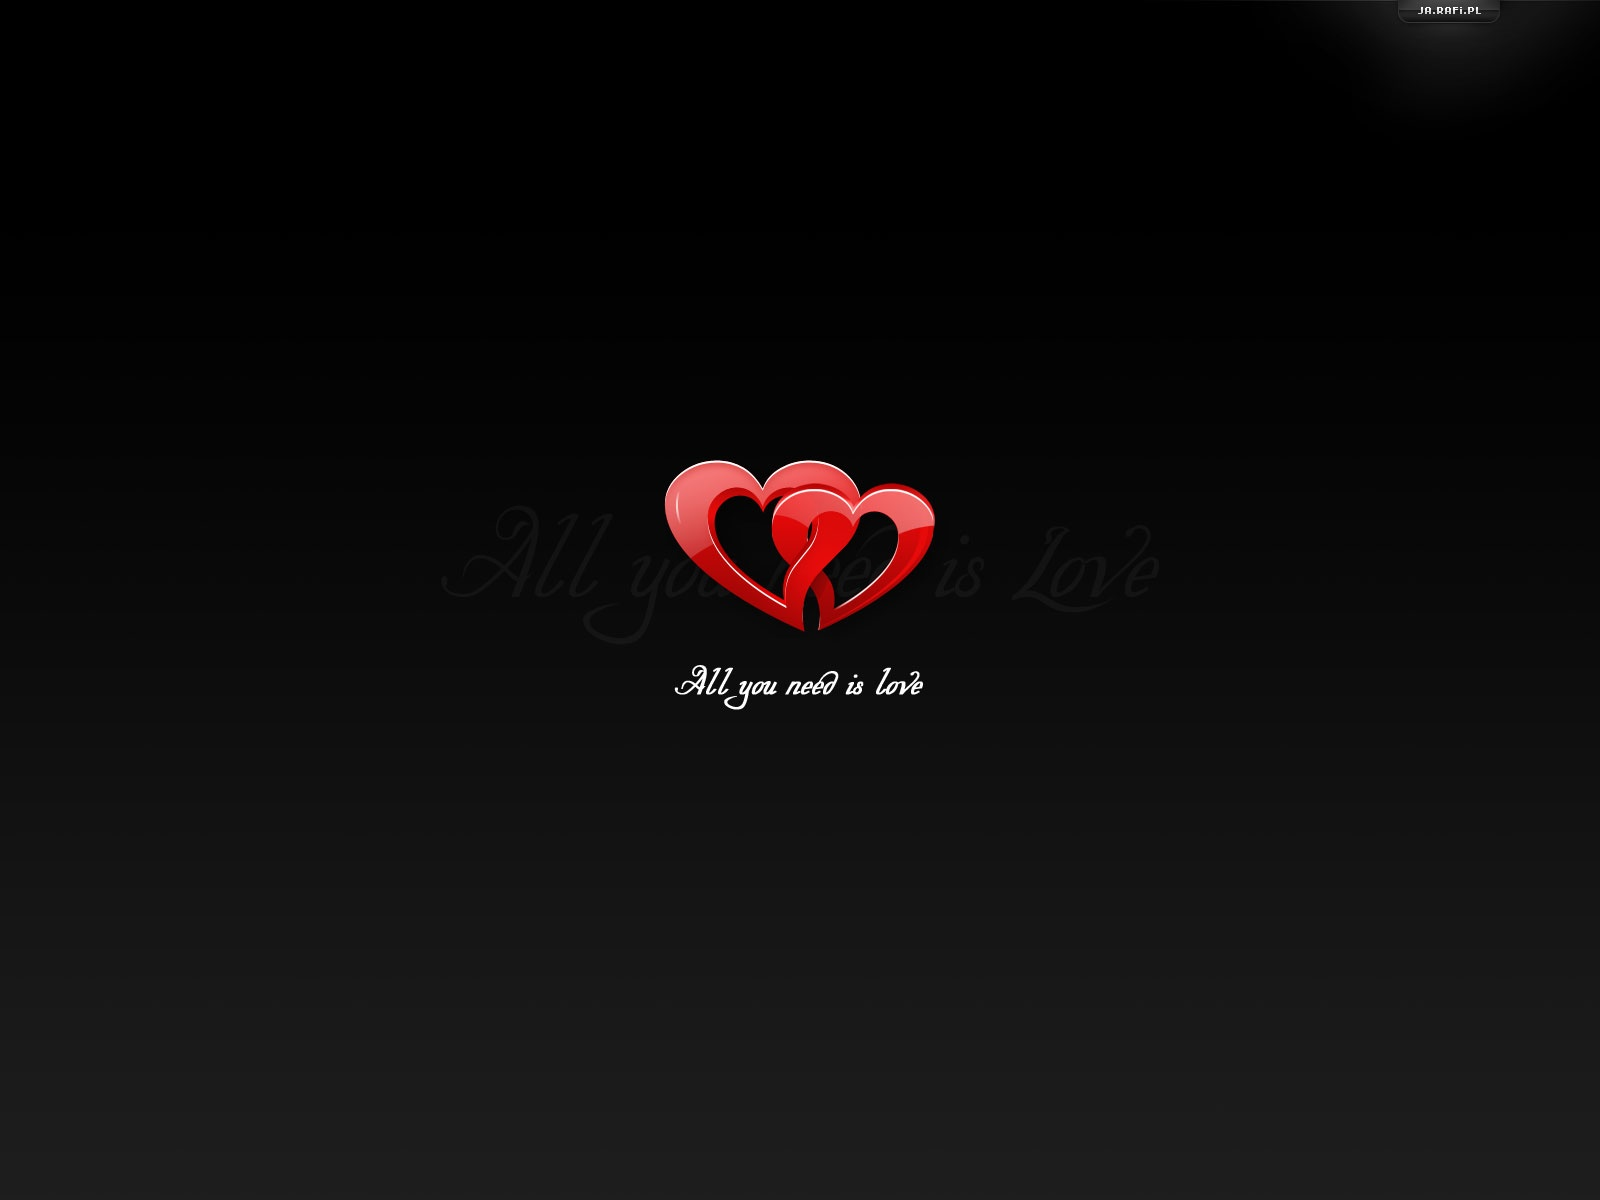 click to free download the wallpaper--Simple and Impressive Wallpaper, Two Red Hearts Running Into Each Other, Black Background, Lovely Scene 1600X1200 free wallpaper download